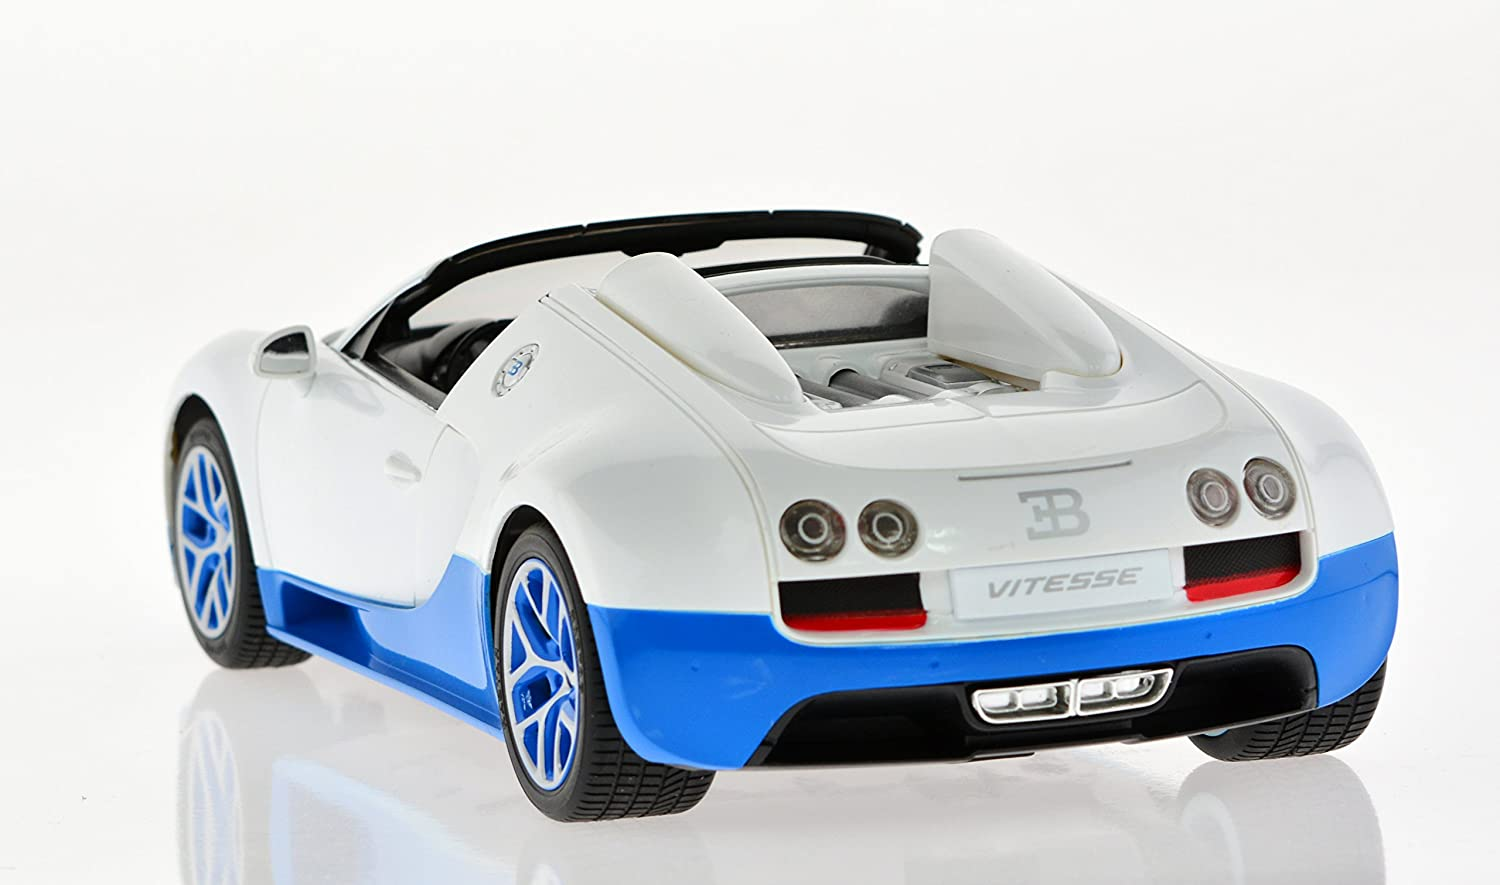 Carmel 1:14 Bugatti Grand Sport Vitesse USB Charger 2.4Ghz with Lights Rechargeable Battery Black